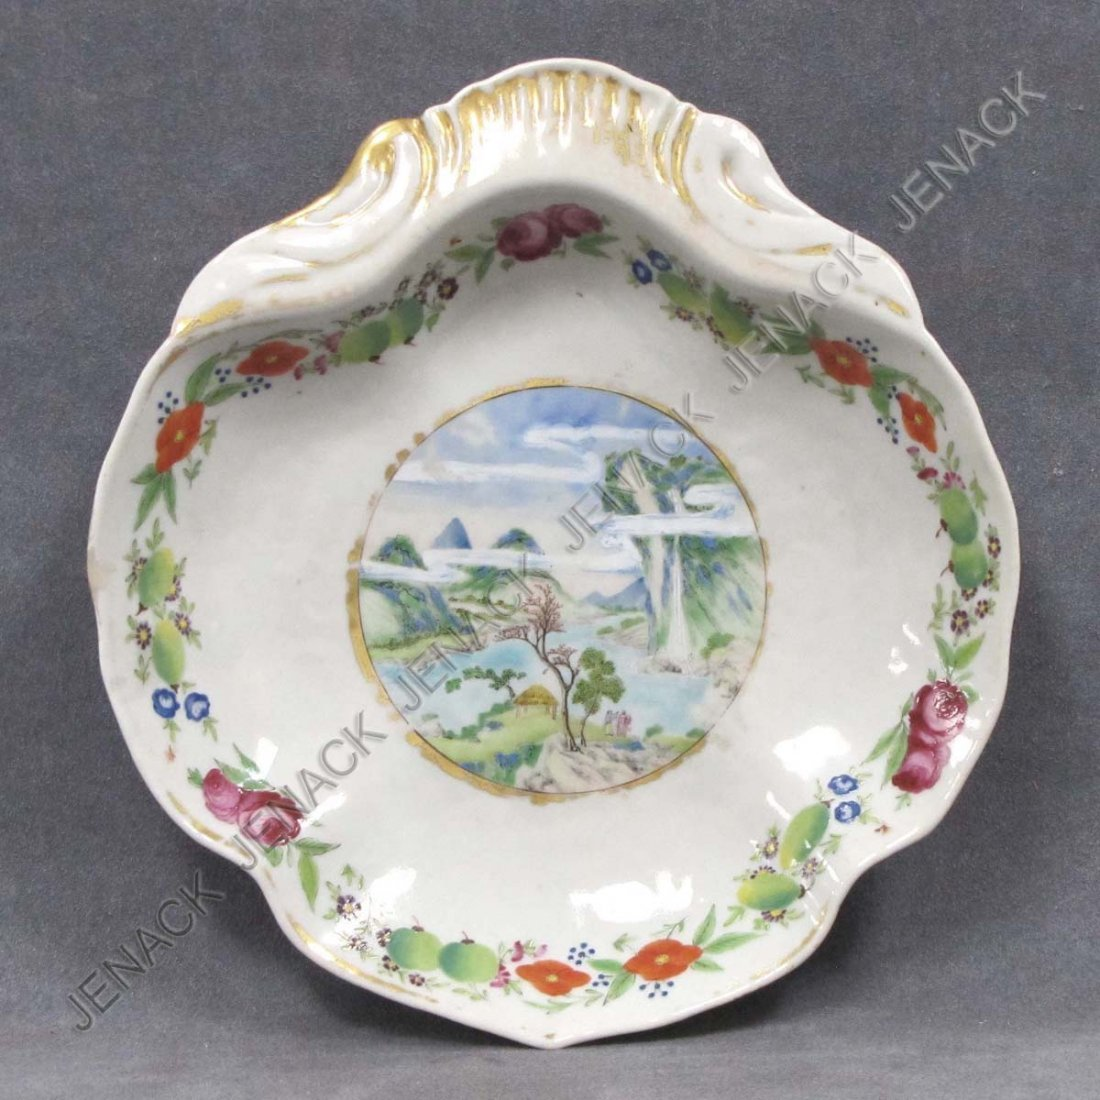 2: CHINESE EXPORT DECORATED PORCELAIN SHAPED DISH